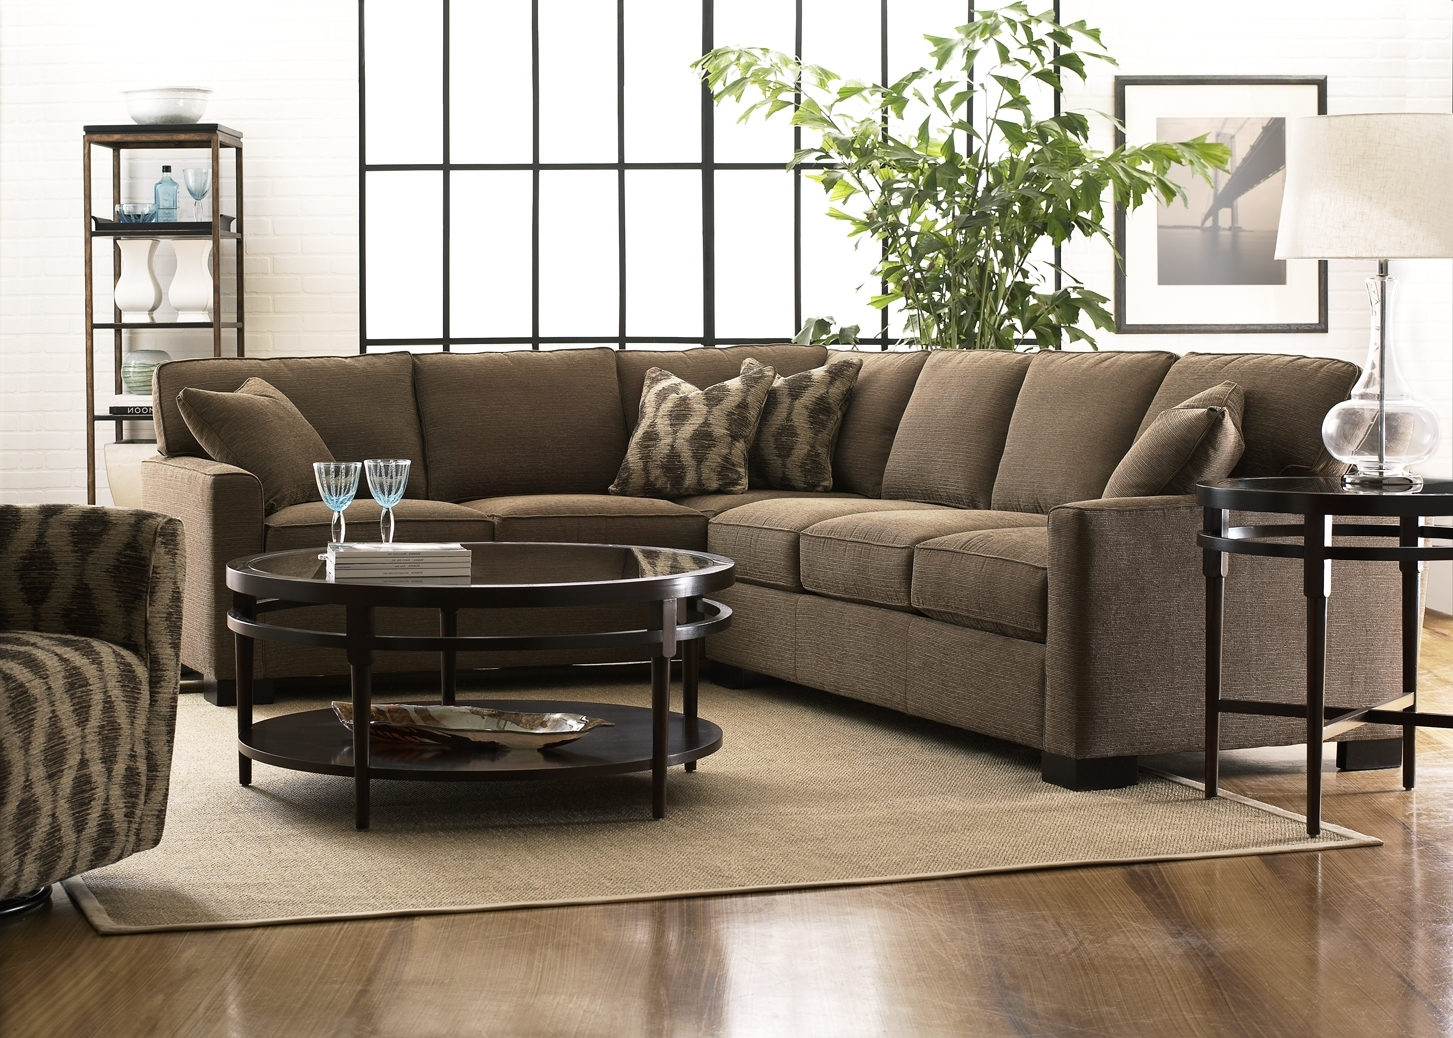 Narrow Spaces Sectional Sofas In Most Recently Released L Brown Fabric Sofa With Back Addedround Black Table With (View 8 of 20)